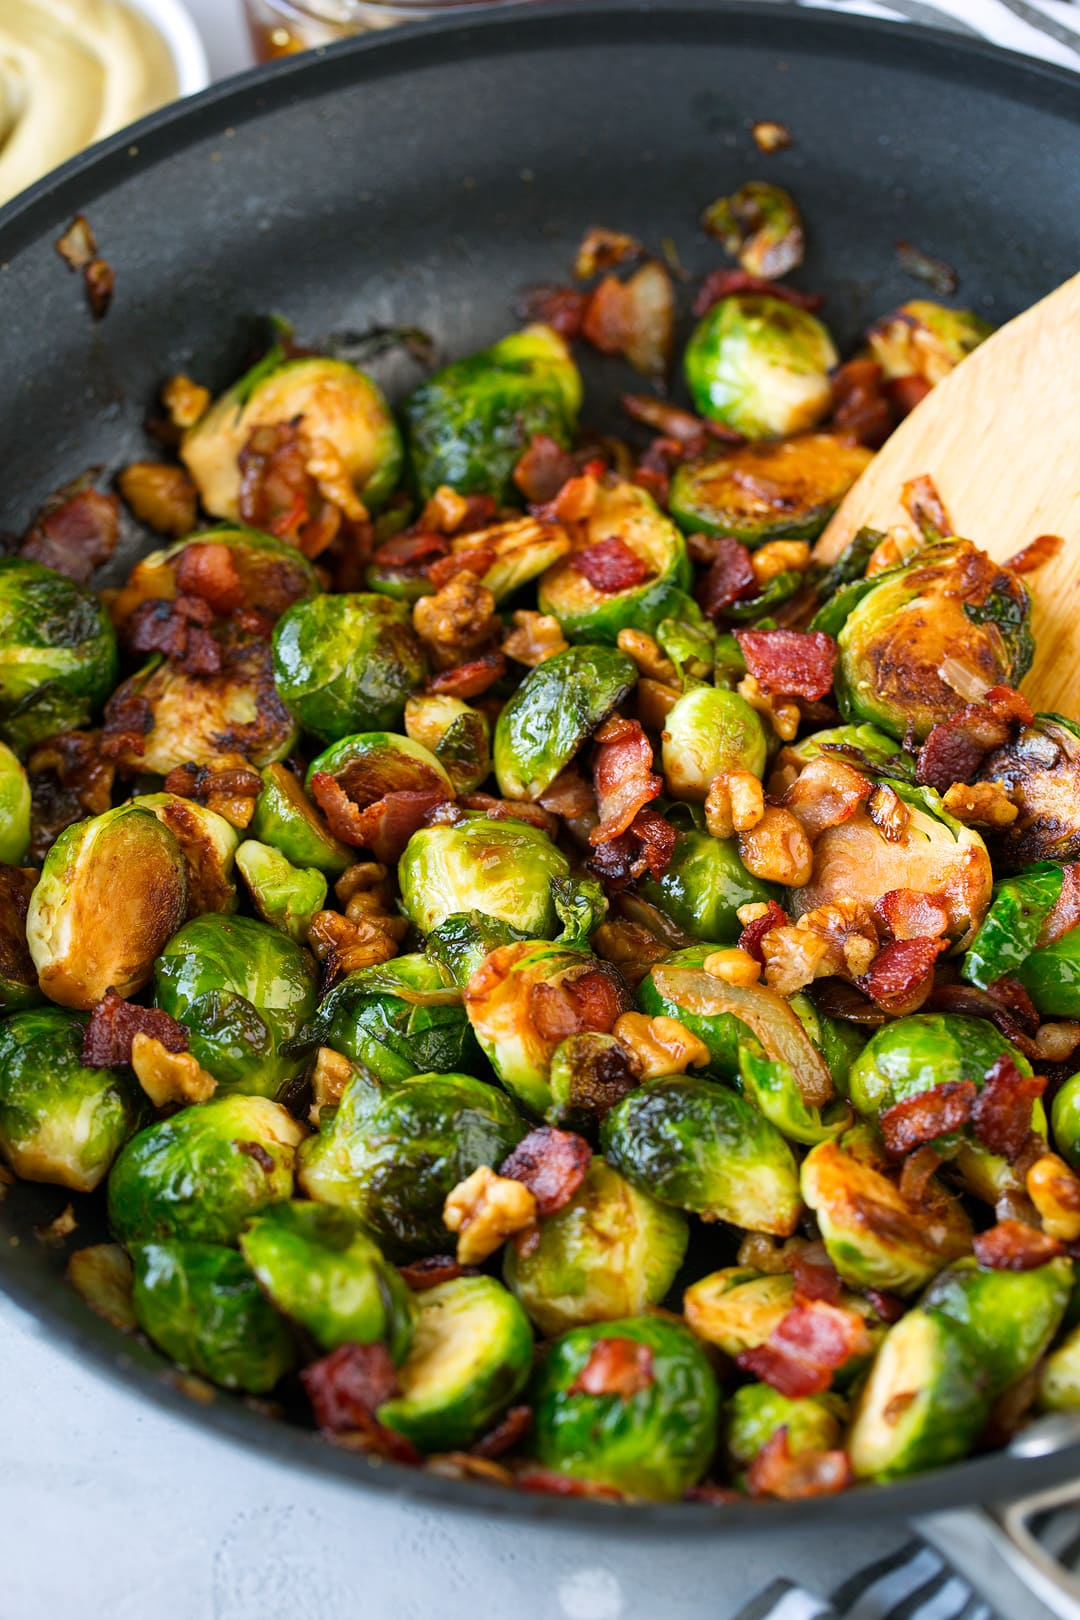 Sauteed Brussels Sprouts with Bacon Onions and Walnuts shown here in a large non-stick skillet